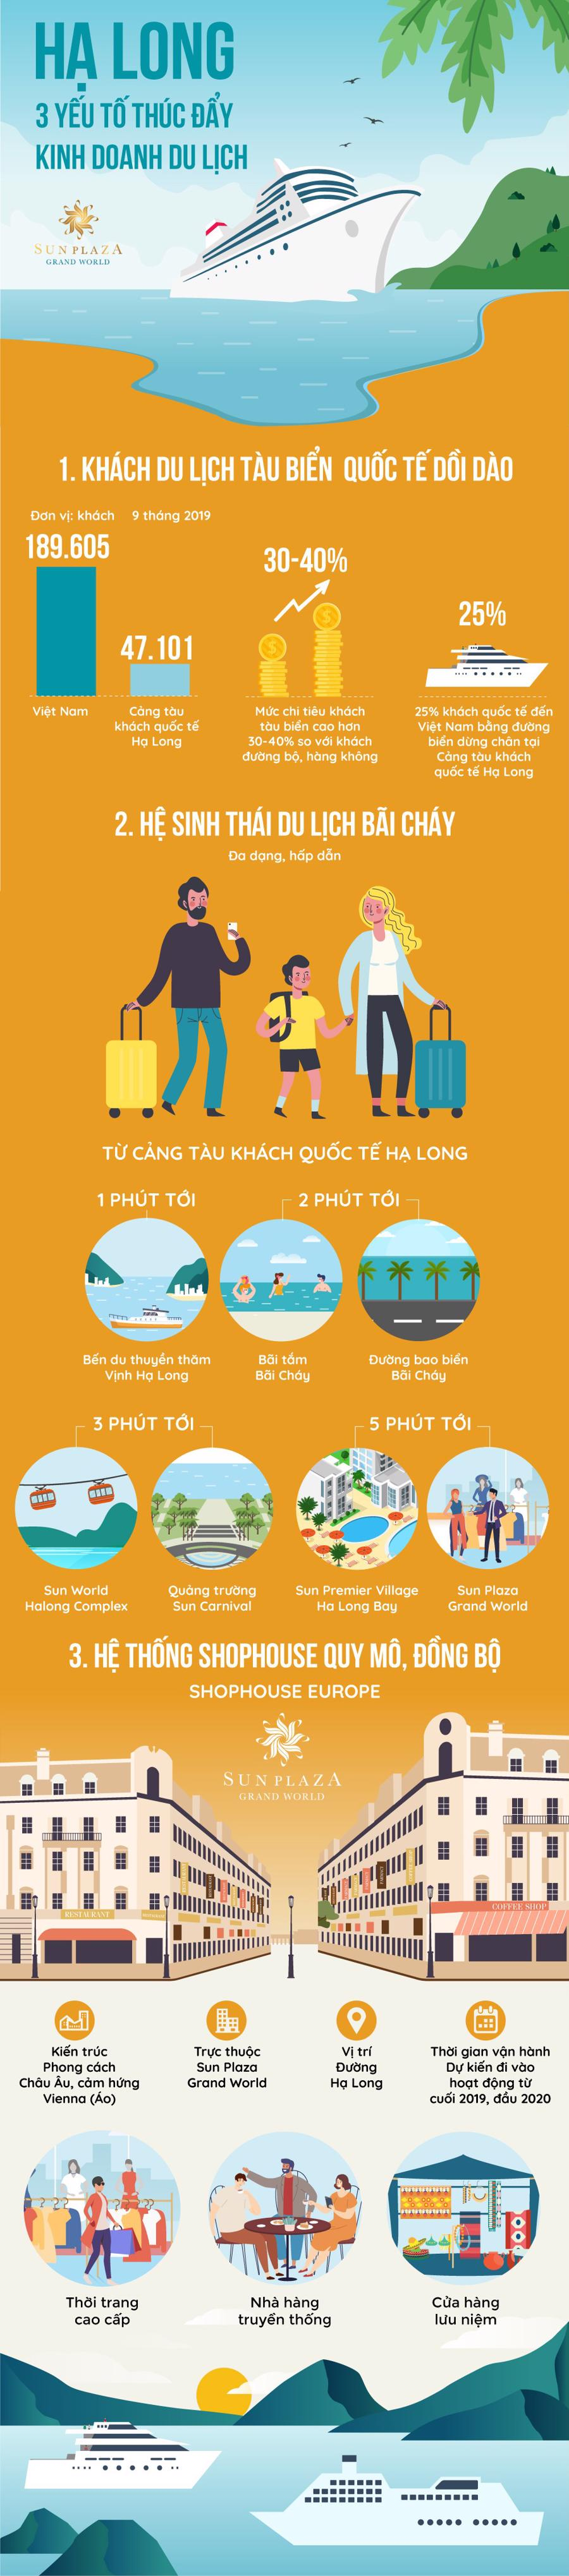 Infographic DL Hạ Long